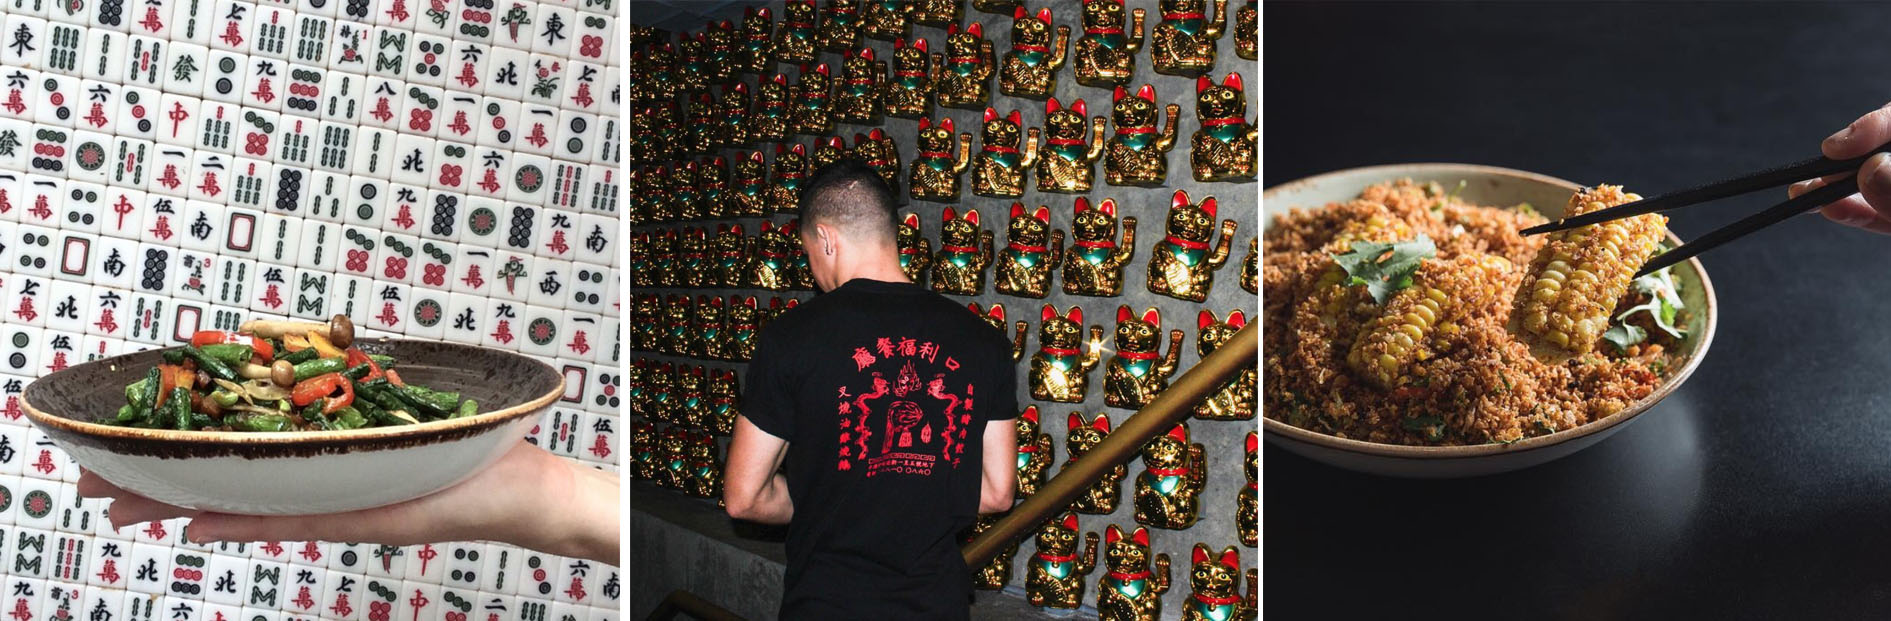 Hands down one of the best places to grab a drink and some grub in Hong Kong.Who doesn't love a wall of lucky cats waving at you as you enter? The head chef describes it as 'a funky Chinese restaurant where people can come eat, and get messed up'.